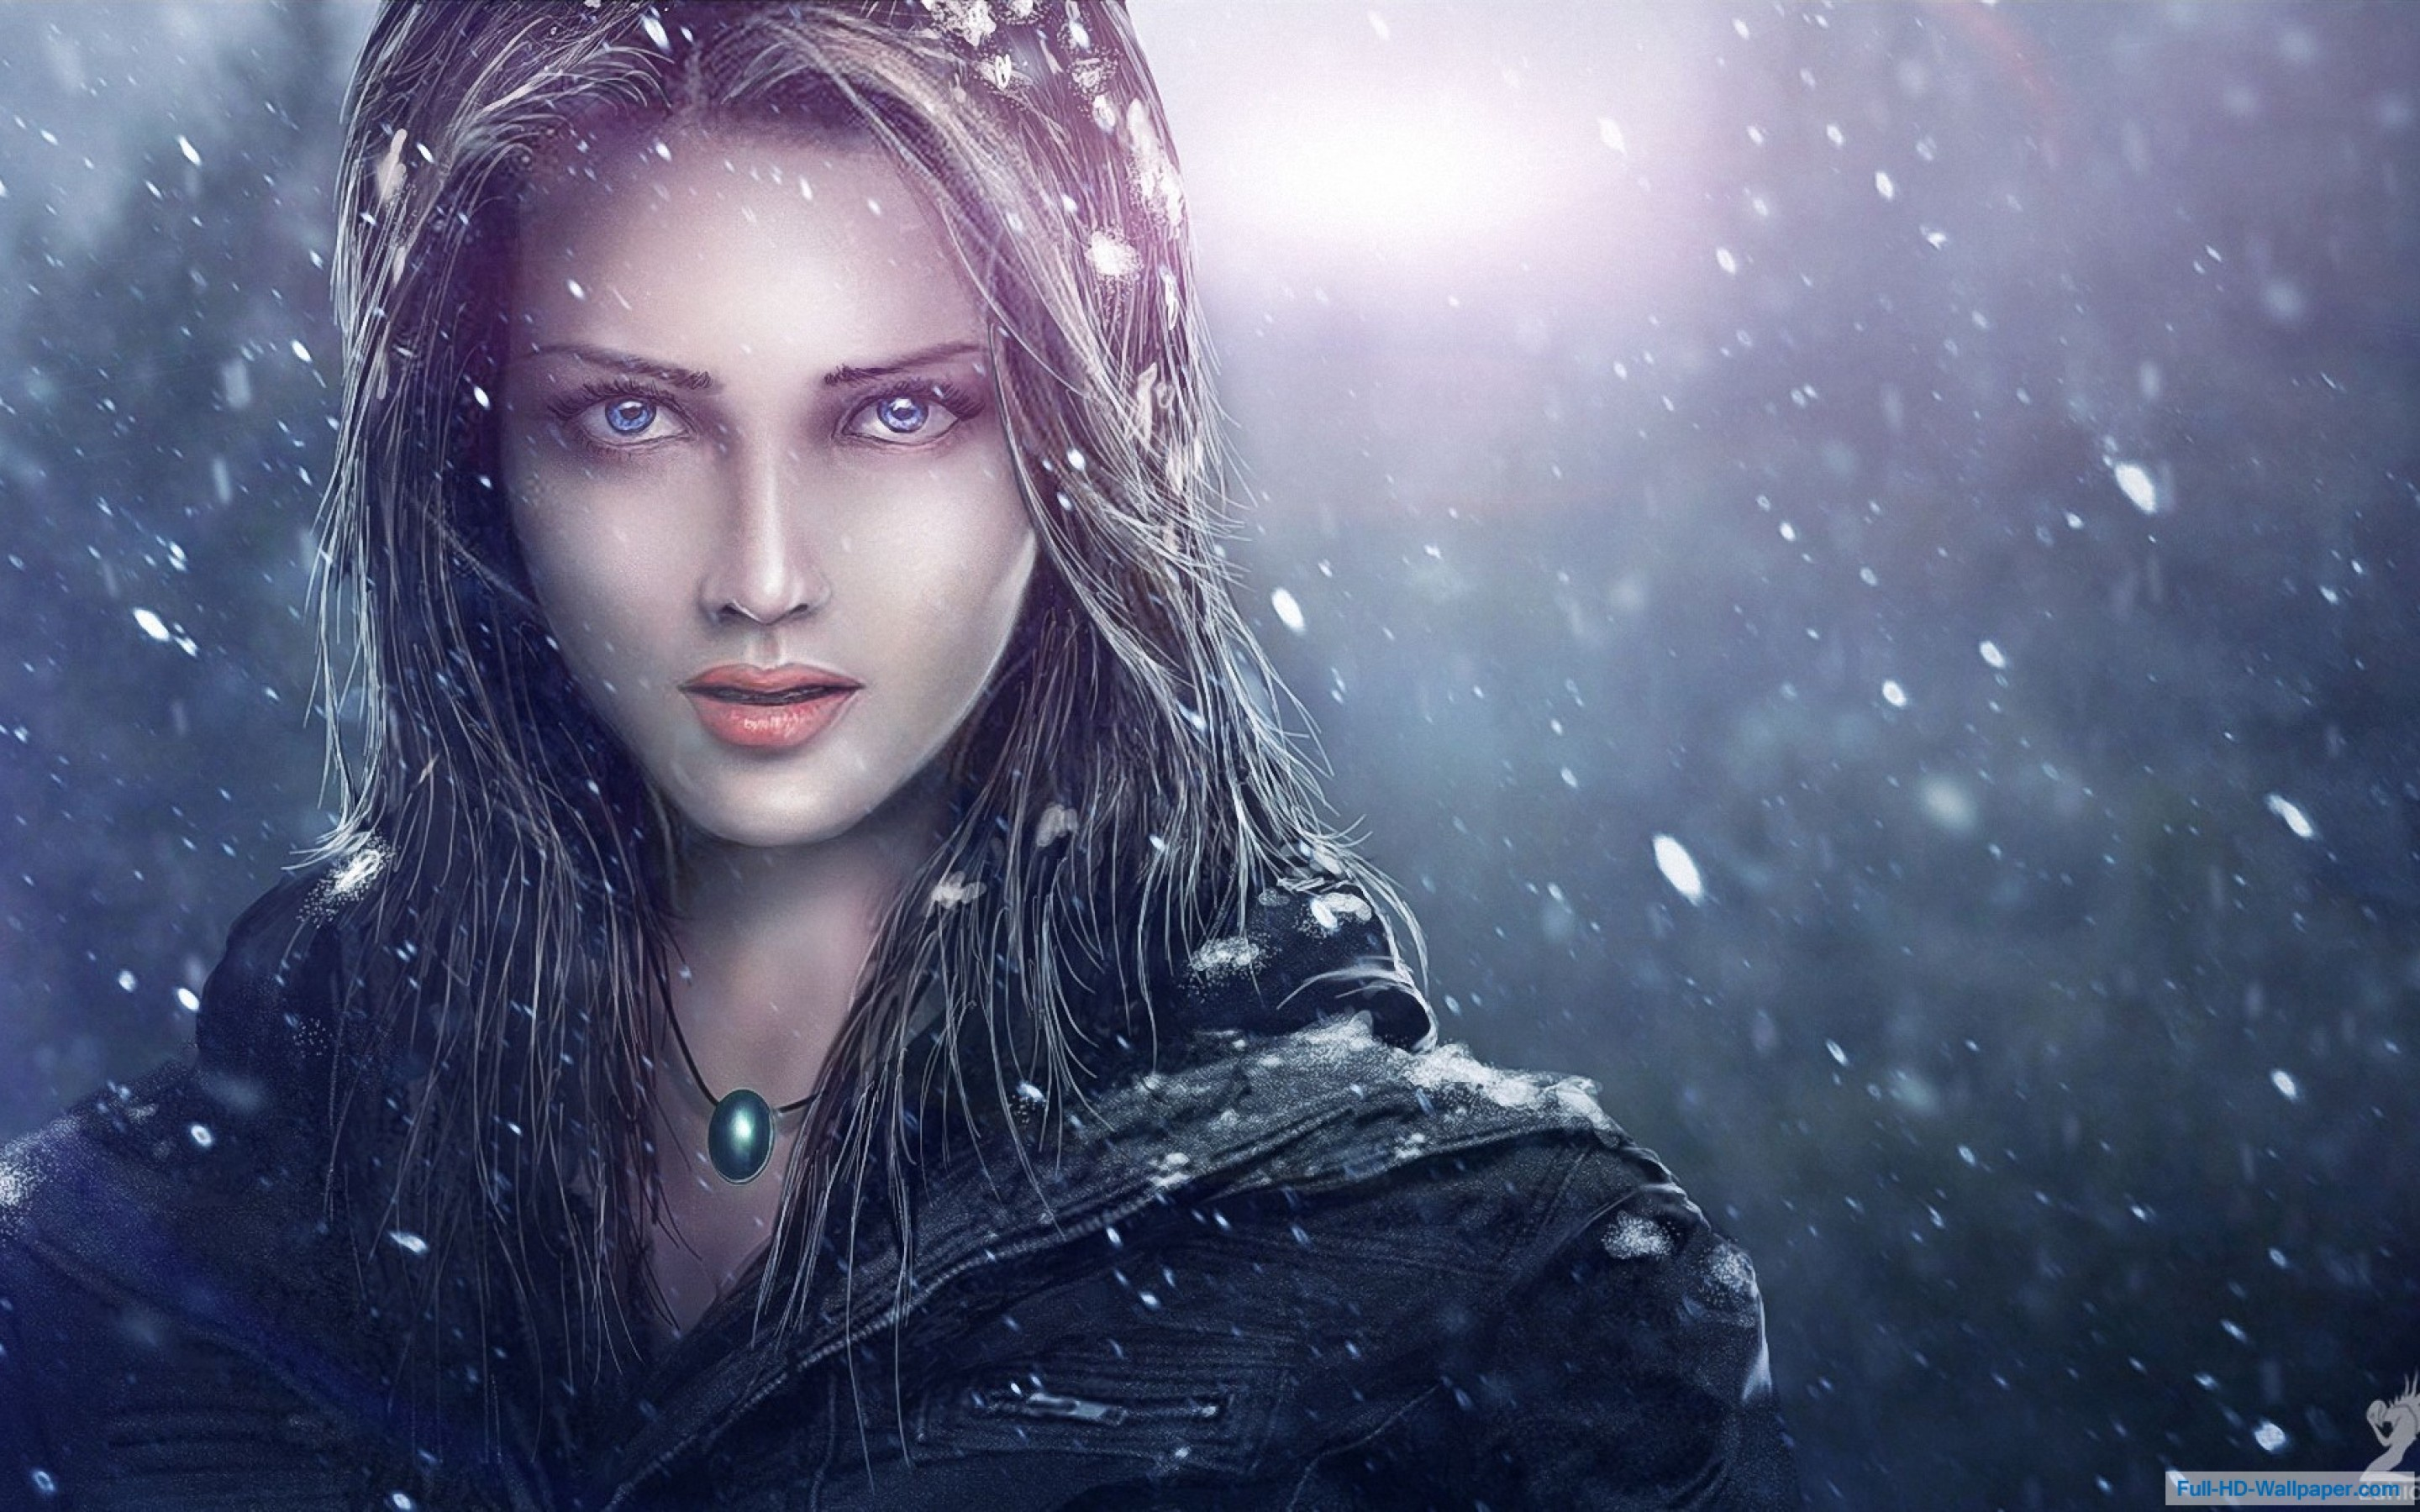 Fantasy Art Women Model Wallpapers Hd Desktop And: Fantasy Female Wallpaper (75+ Images